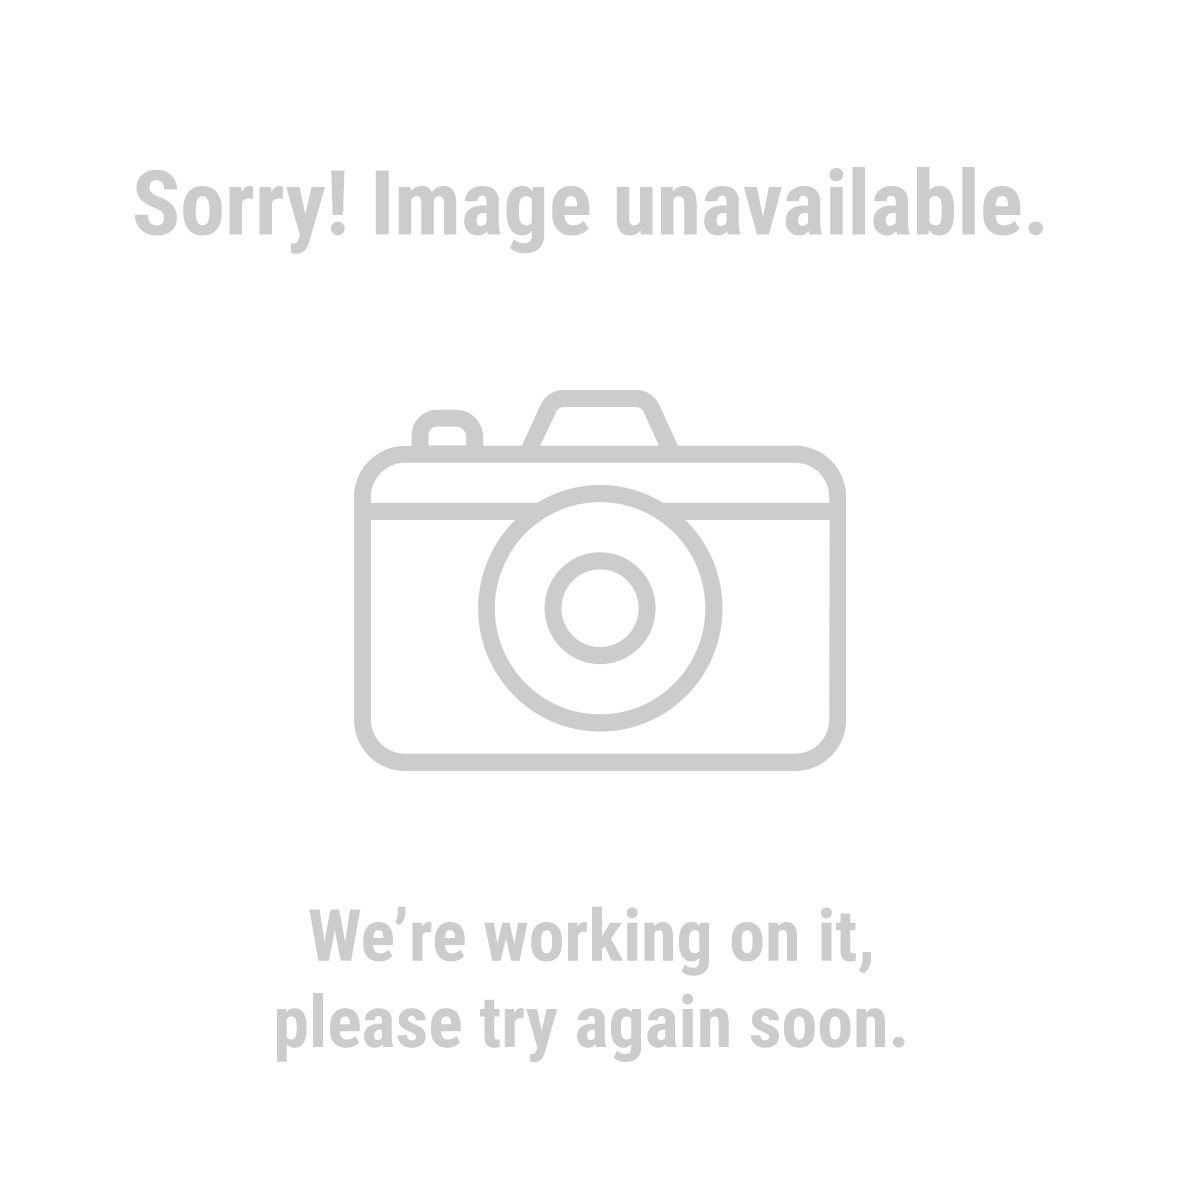 Haul-Master 60660 Square Bail PTO Lock Pin